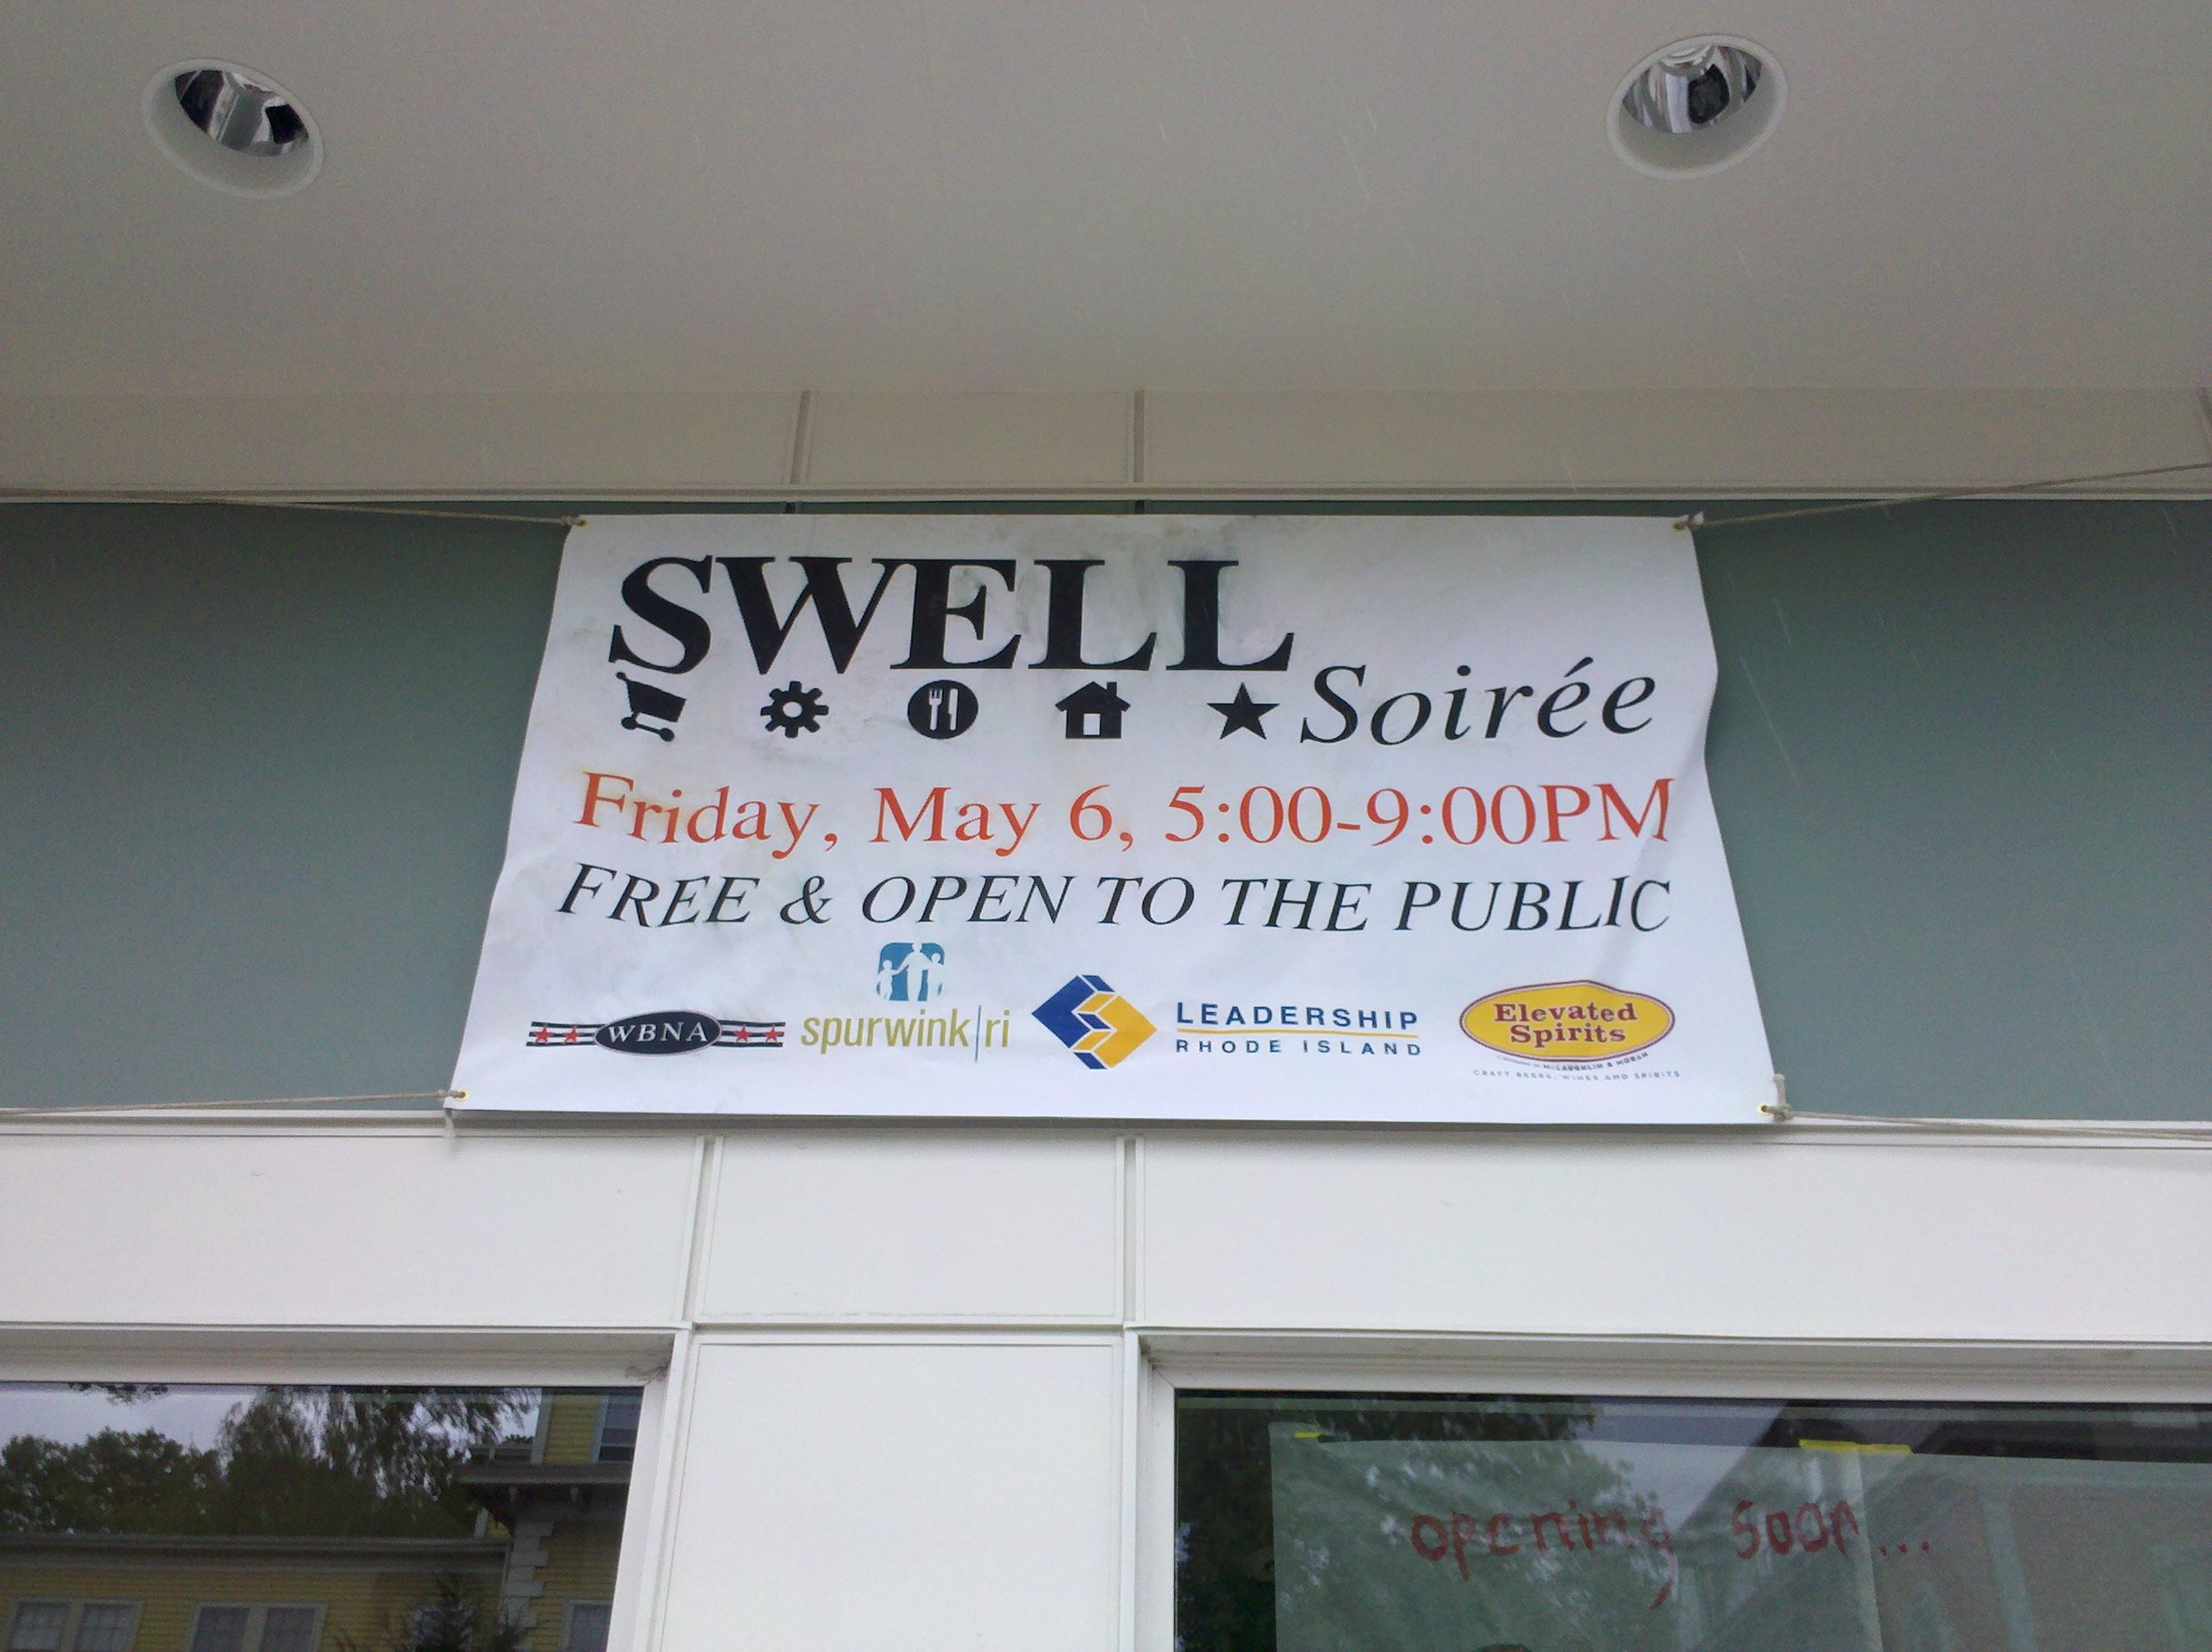 A SWELL (Shop, Work, Eat, Live & Learn locally) Soirée in the new space, May 2011